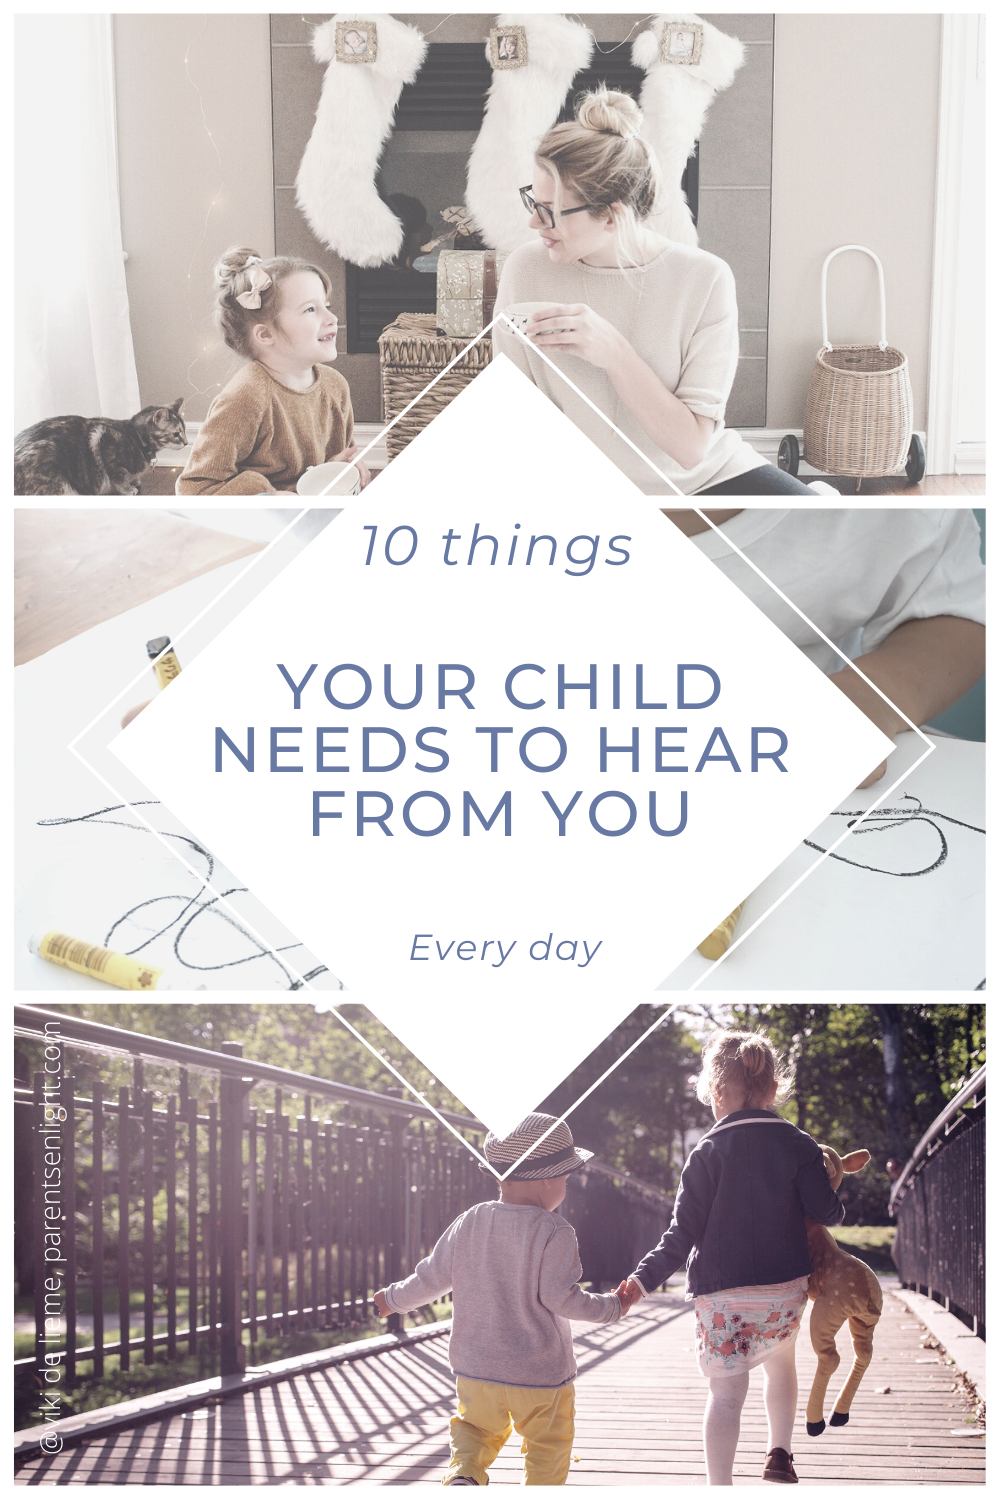 Breaking the cycle of fear, guilt, and shame is about learning how to parent from the heart; and all that is about communication. Empowering communication. Here are the 10 things your child needs to hear from you every day to be the best and happiest version of himself he can possible be #parenting #positiveparenting #attachmentparenting #nonviolentcommunication #positivecommunication #connectedparenting #raisinghappykids #motherhood #empoweringkids #children'sbigfeelings #parentalsupport